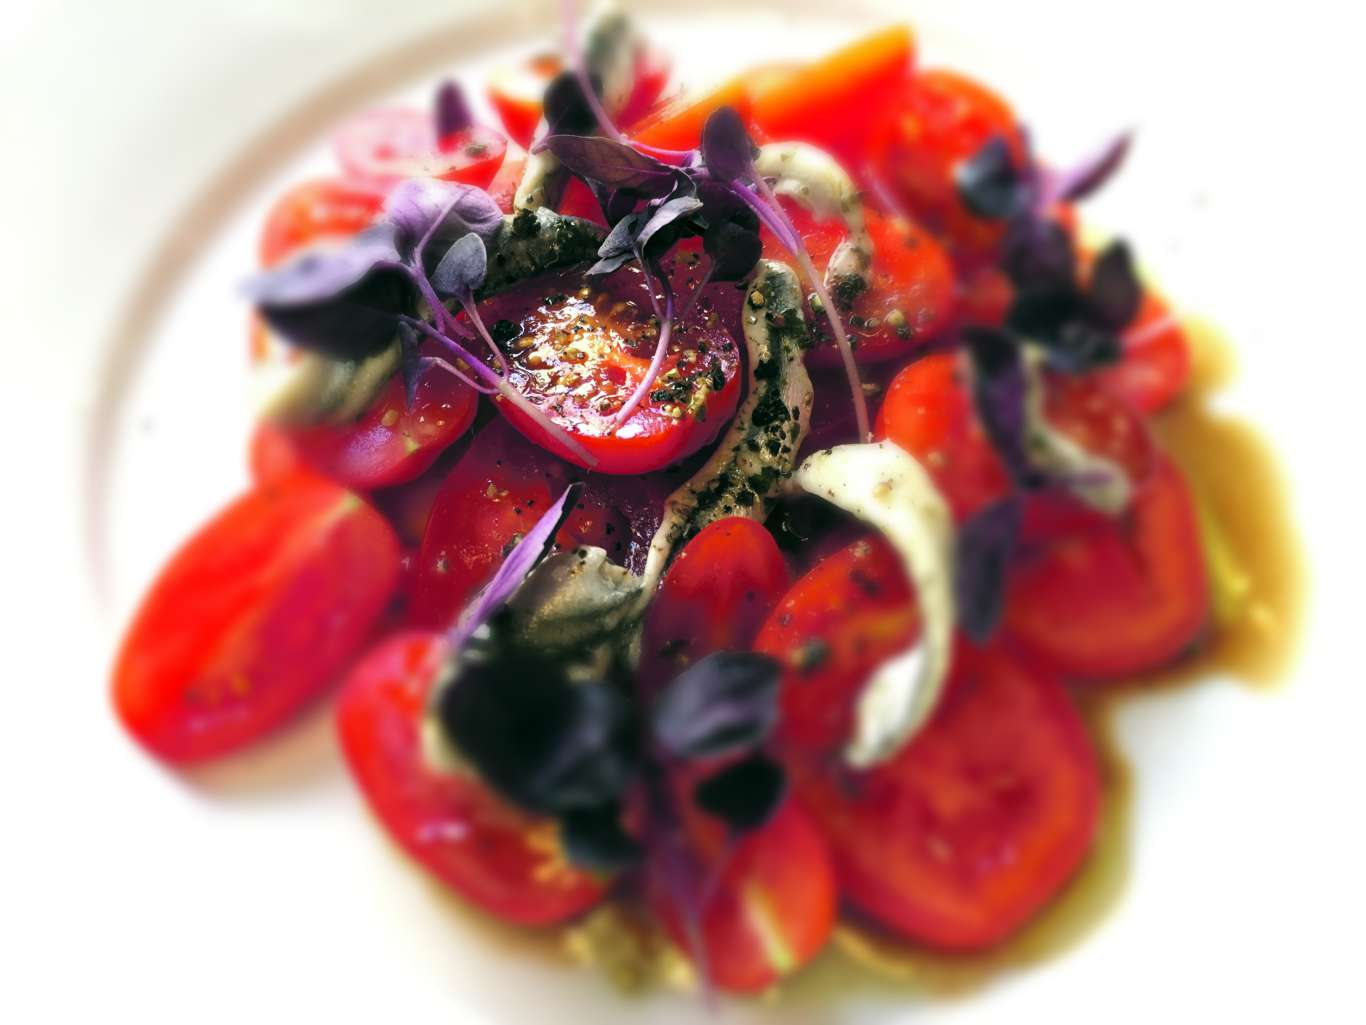 Tomatoes and anchovt at Hantverk & Found. Photo: Stephen Emms